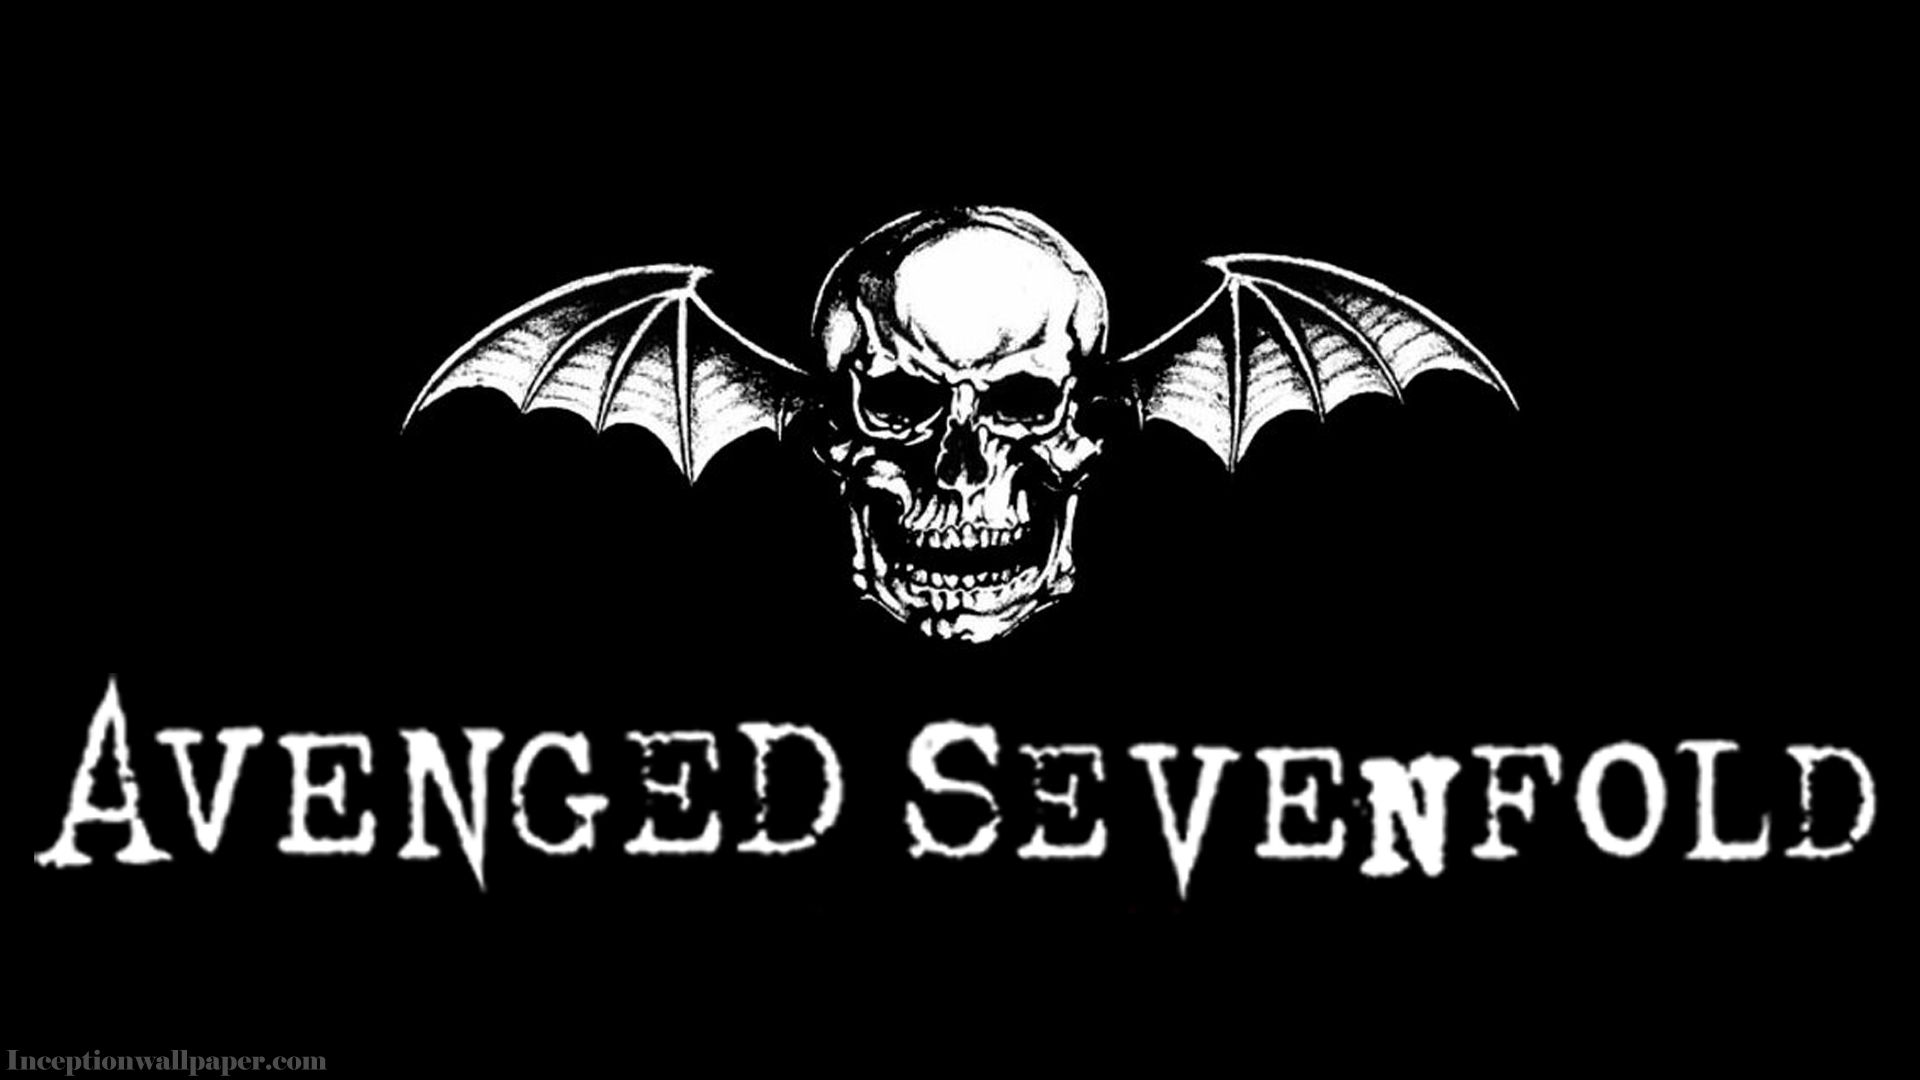 36 units of Avenged Sevenfold Wallpaper